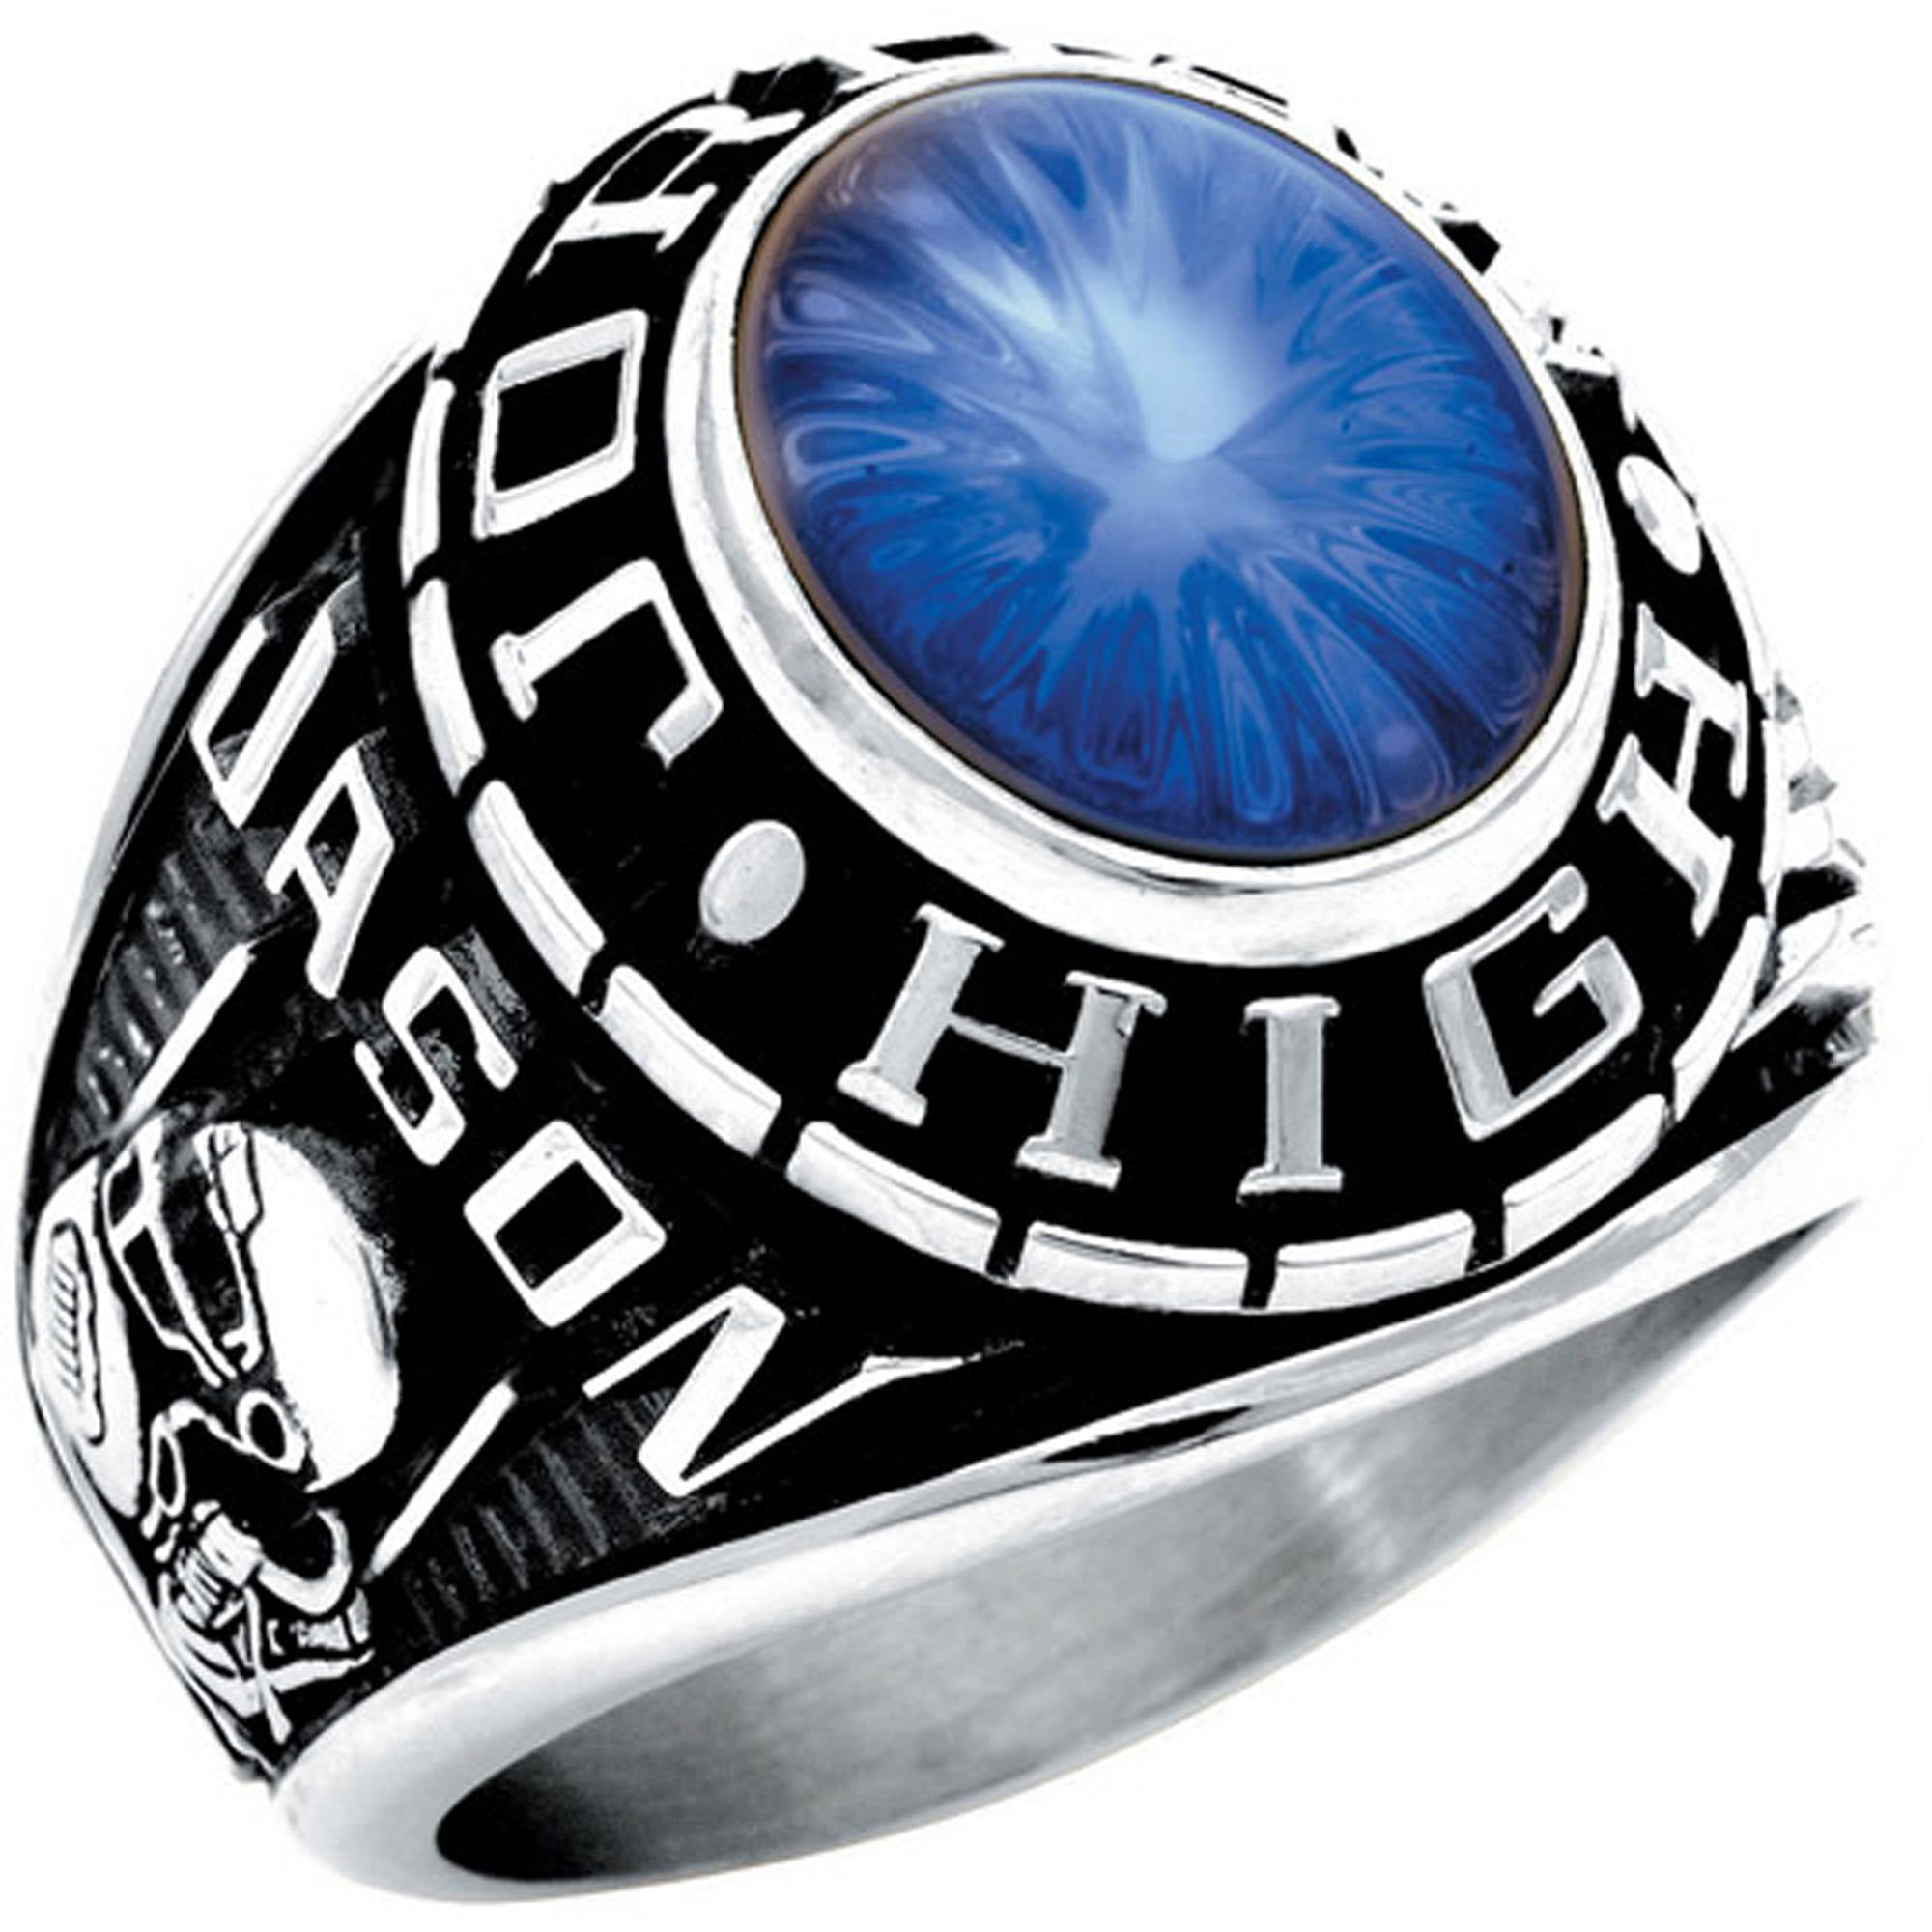 began ring college first becomes lasting jewelry and rings since in for class have seniors become west the silver high graduating keepsake streak a school popular legacy point features tradition